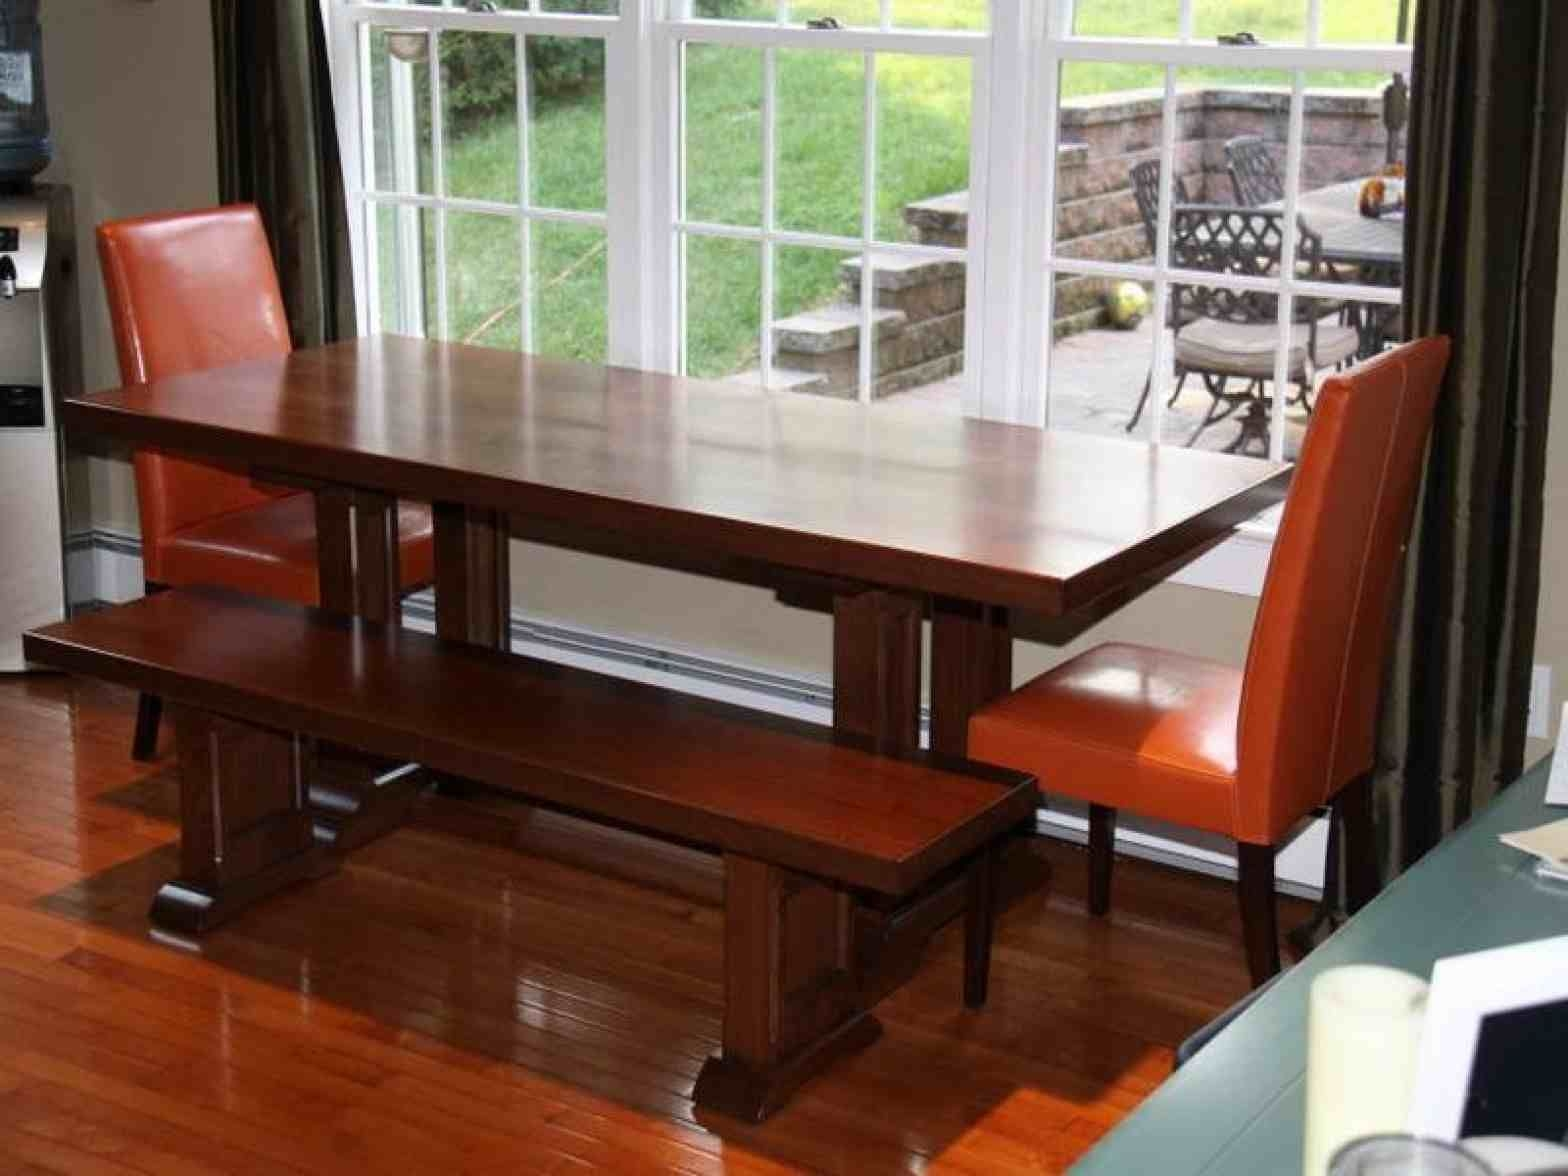 Banquette seating model of dining room sets for small spaces lake